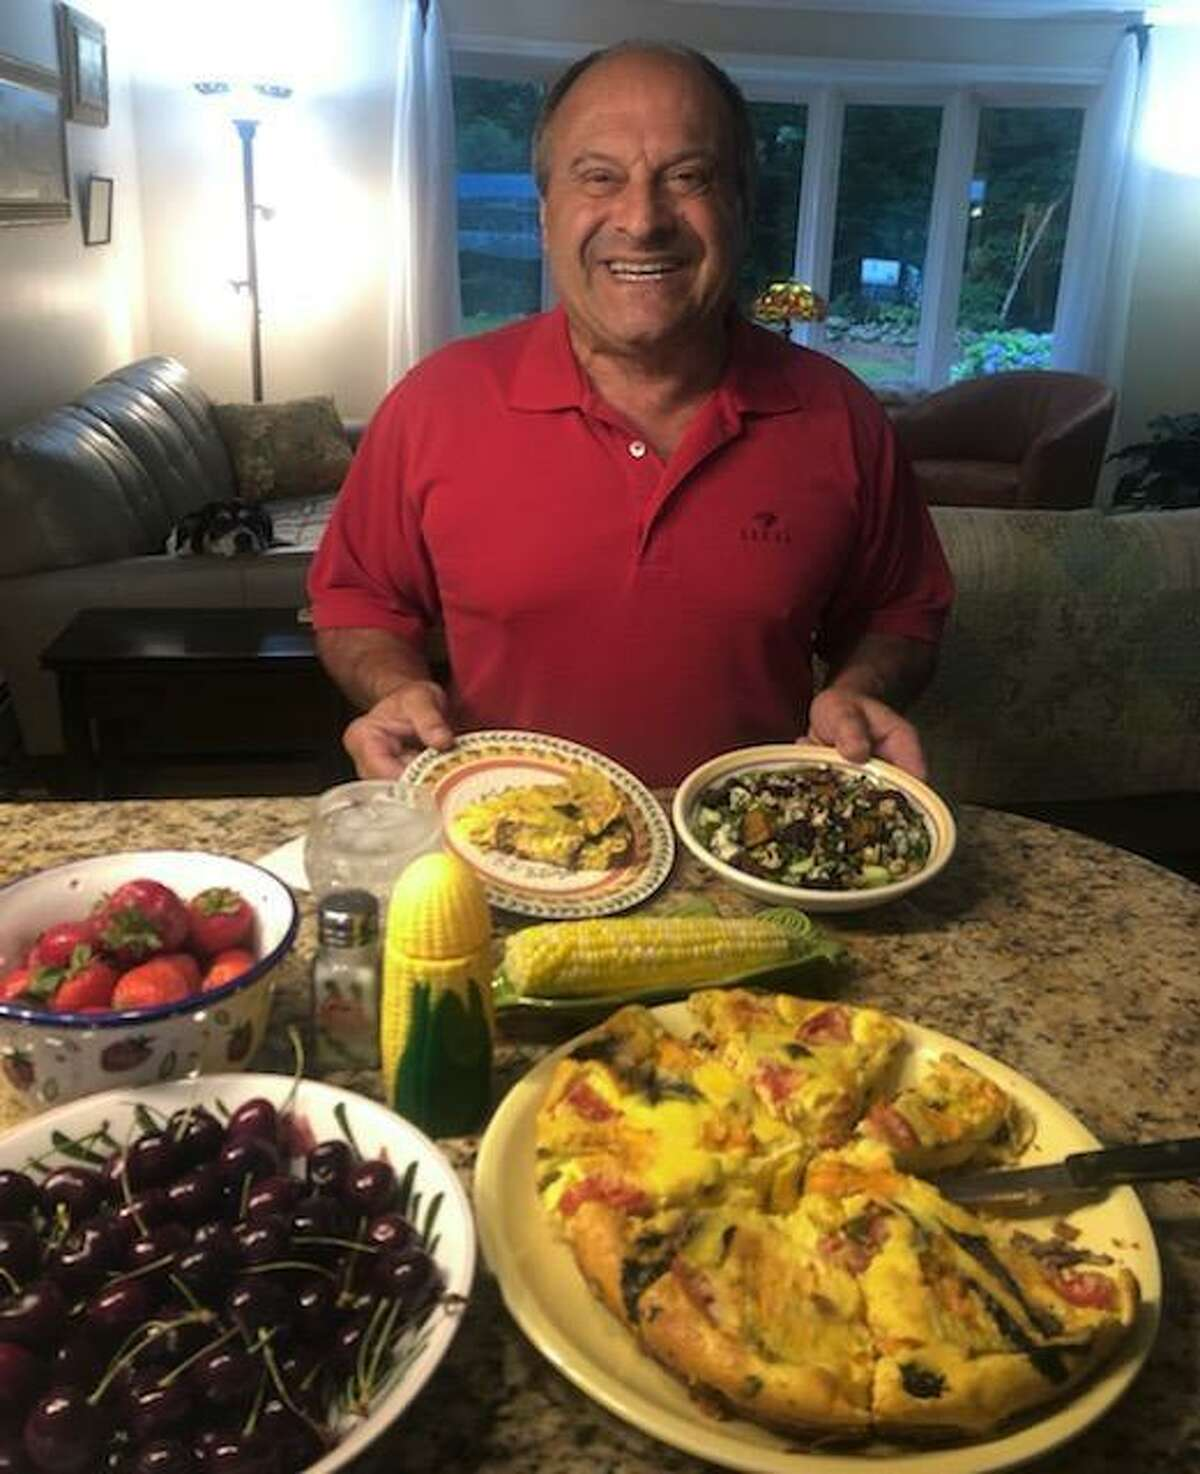 """Pete Leonetti sits before yet another feast prepared by his wife of 39 years, Karen Leonetti. Pete has become a Facebook sensation first through the group """"Wooster Square Cooks,"""" and now through his wife's Facebook group, """"Karen and Pete's Wooster Street Family."""" Hundreds follow Pete and his meals."""